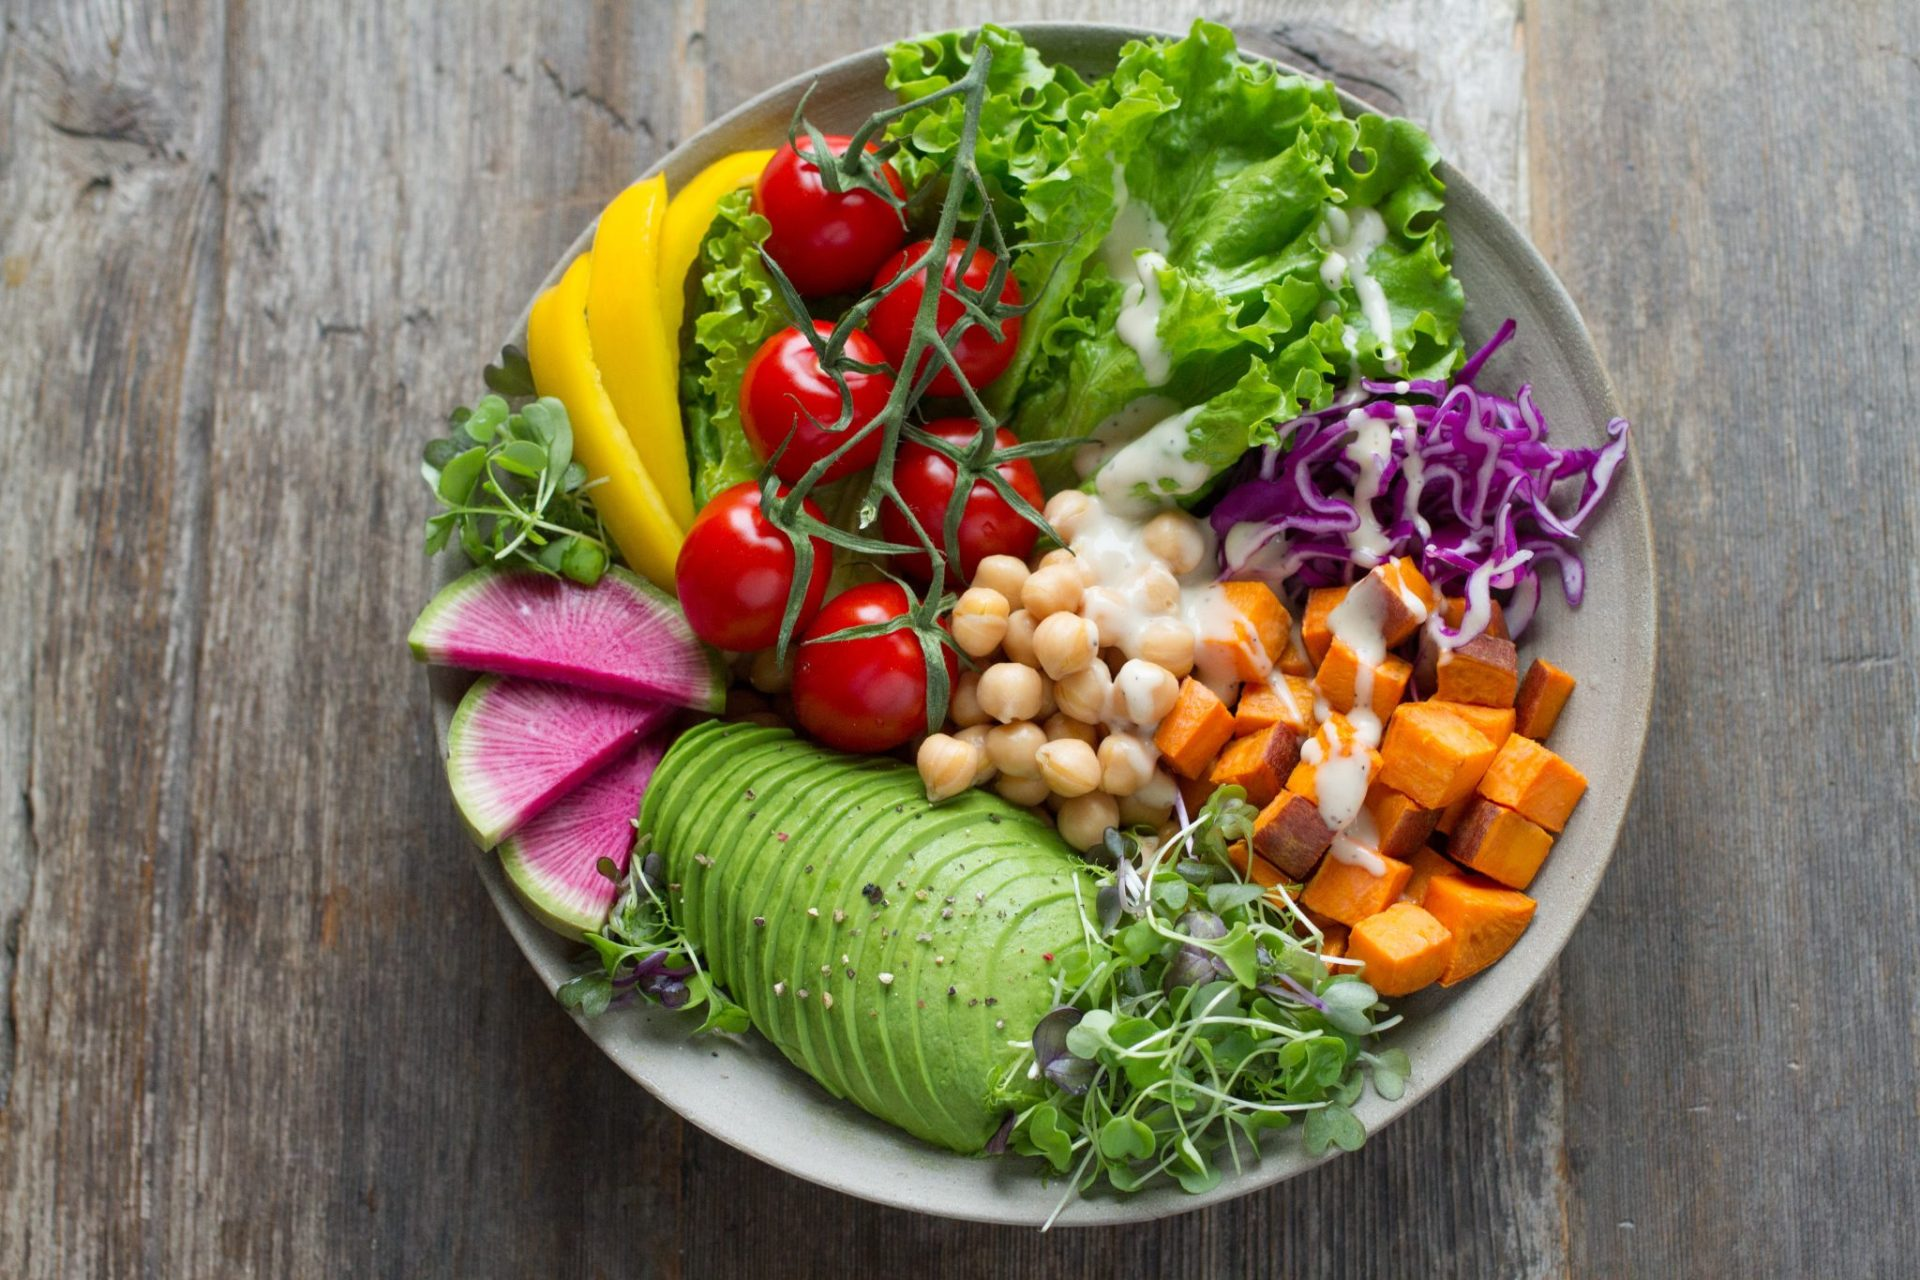 Things to Consider Before Following a Plant-Based Diet